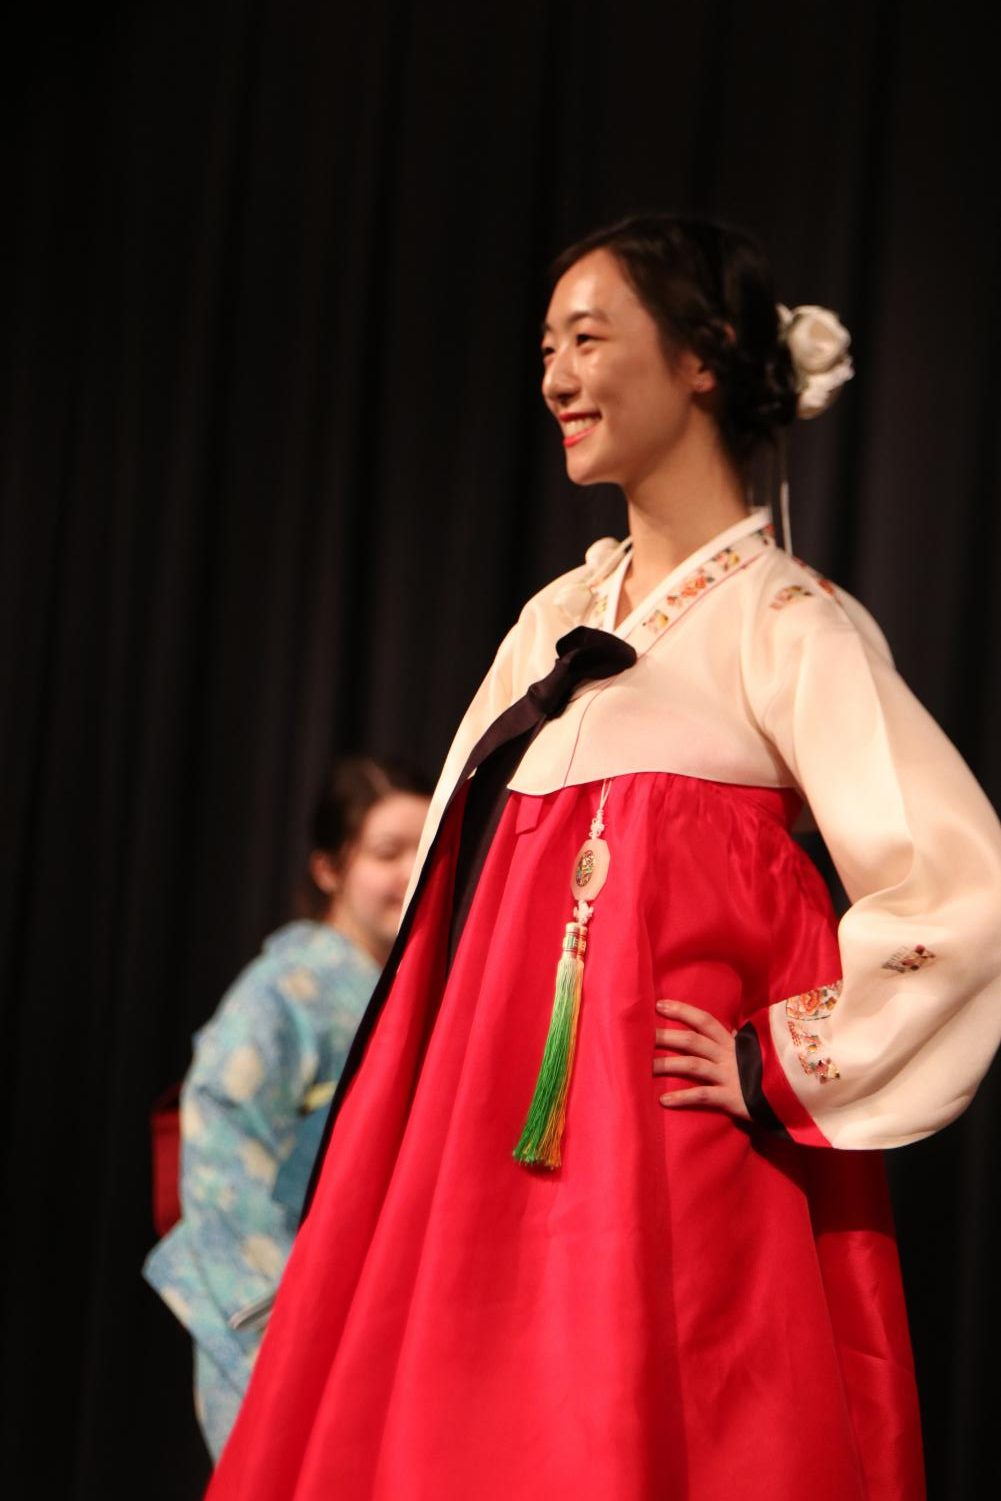 Janice+Oh+%2719+smiles+as+she+wears+traditional+Korean+attire+at+the+fashion+show.